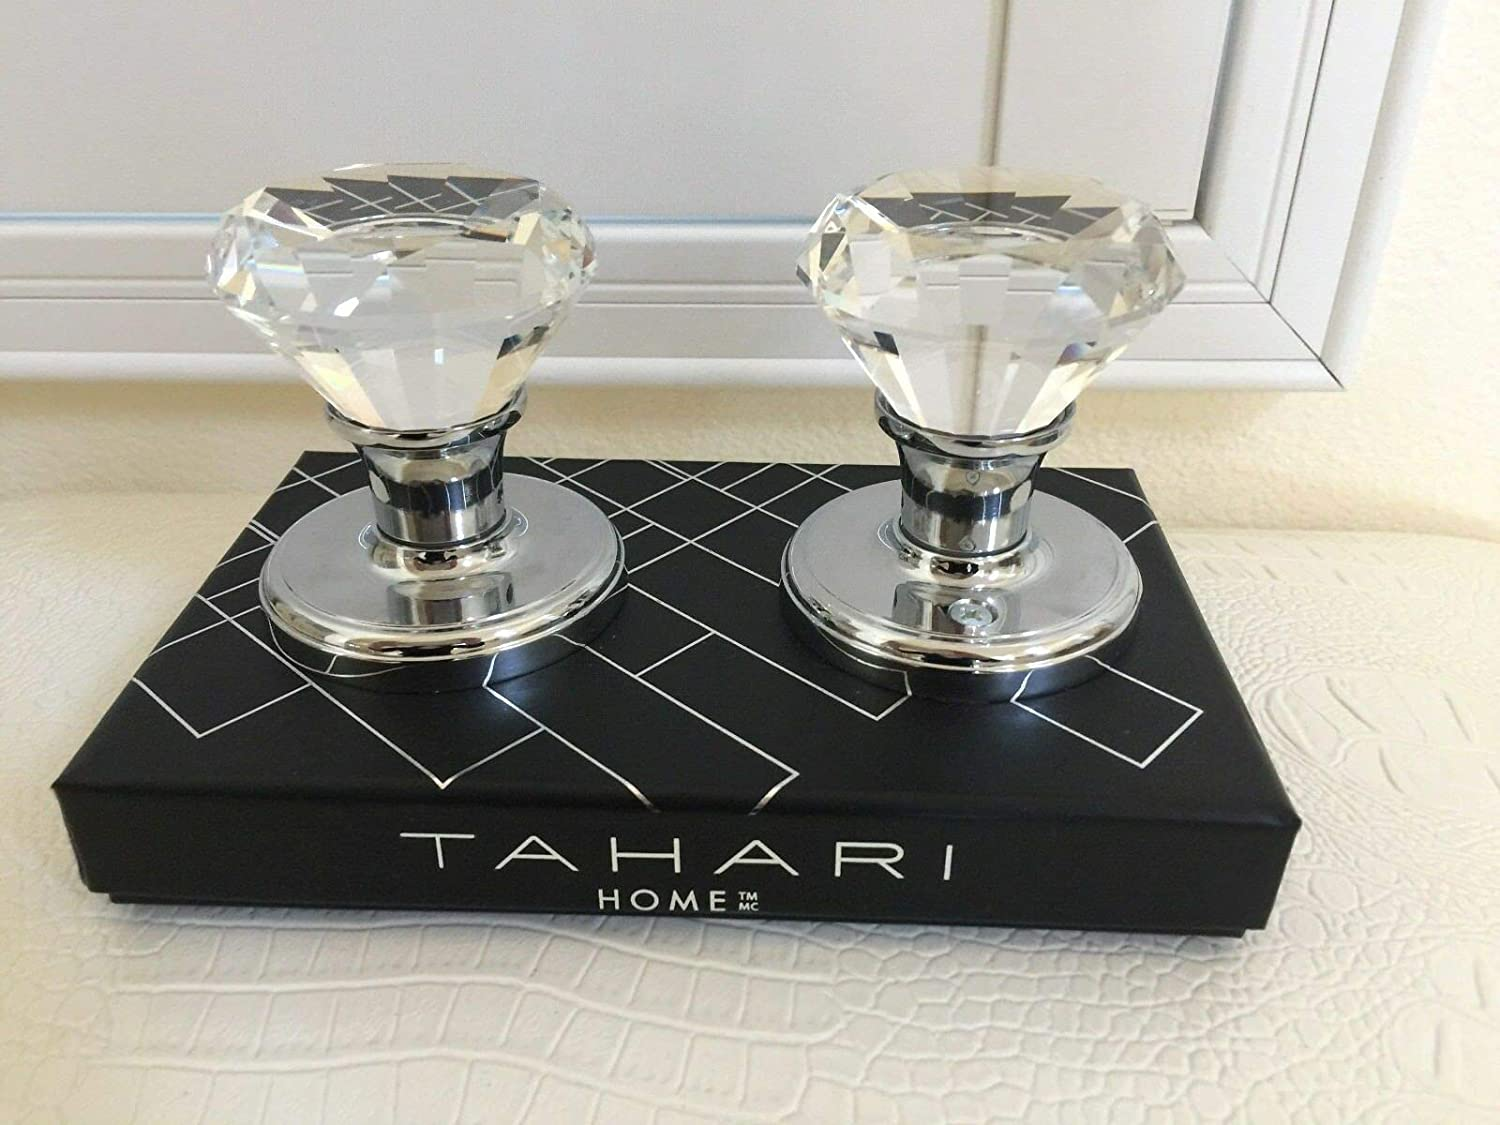 TAHARI HOME Set of 2 Door KNOBS Pull Mirror Crystal Glass Diamond Design